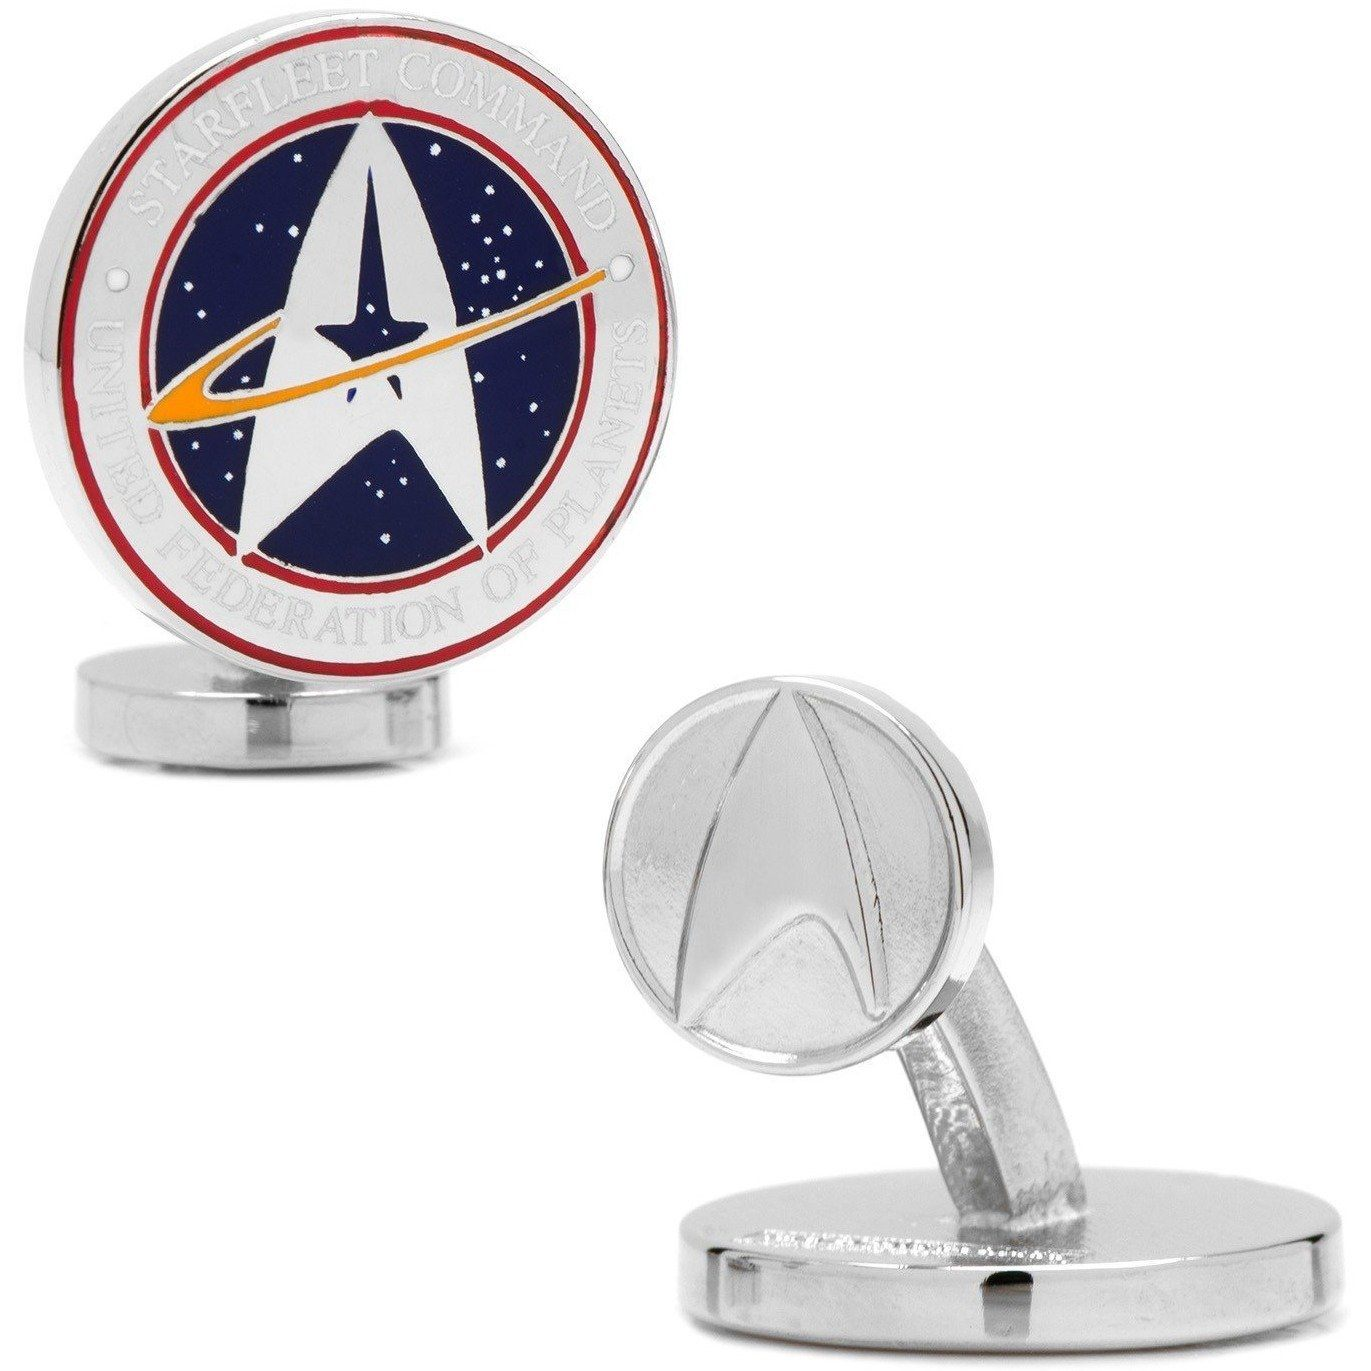 Star Trek Starfleet Command Cufflinks Novelty Cufflinks Star Trek Star Trek Starfleet Command Cufflinks